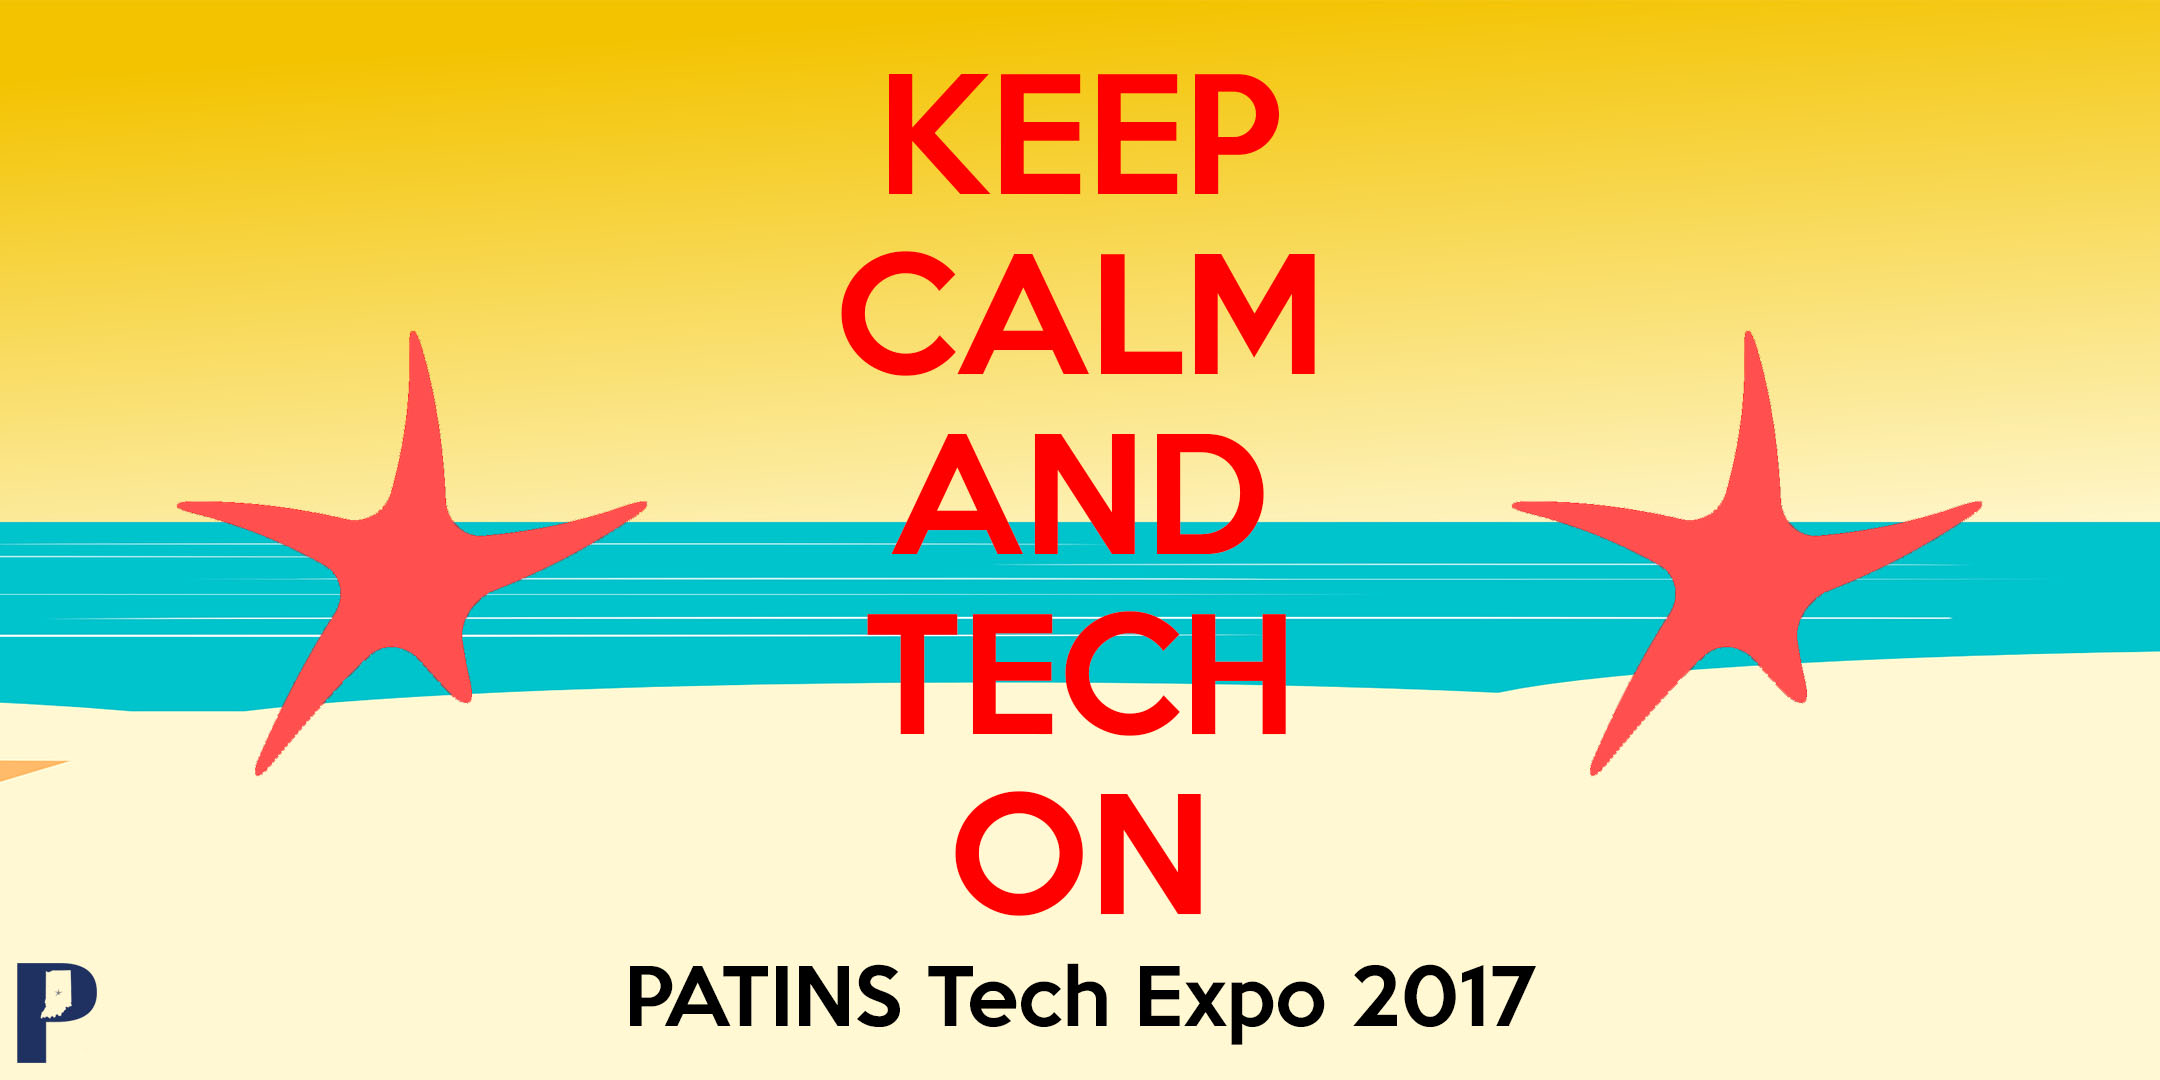 Keep Calm and Tech On at PATINS Tech Expo